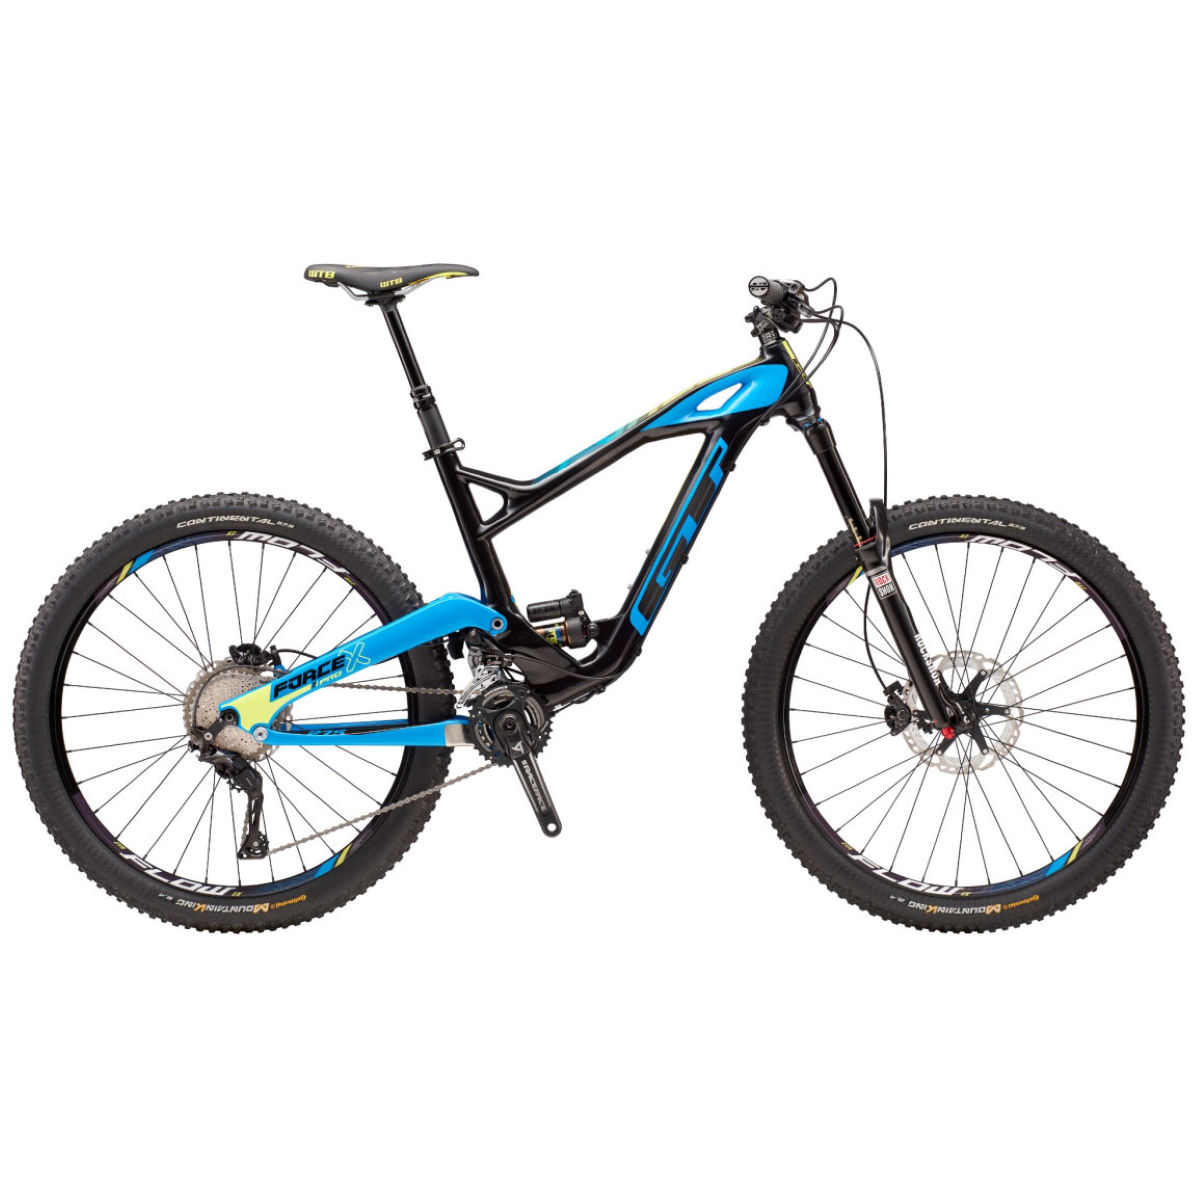 VTT GT Force Carbon Pro (2016) - Large Ex Demo Bike Raw VTT tout suspendu